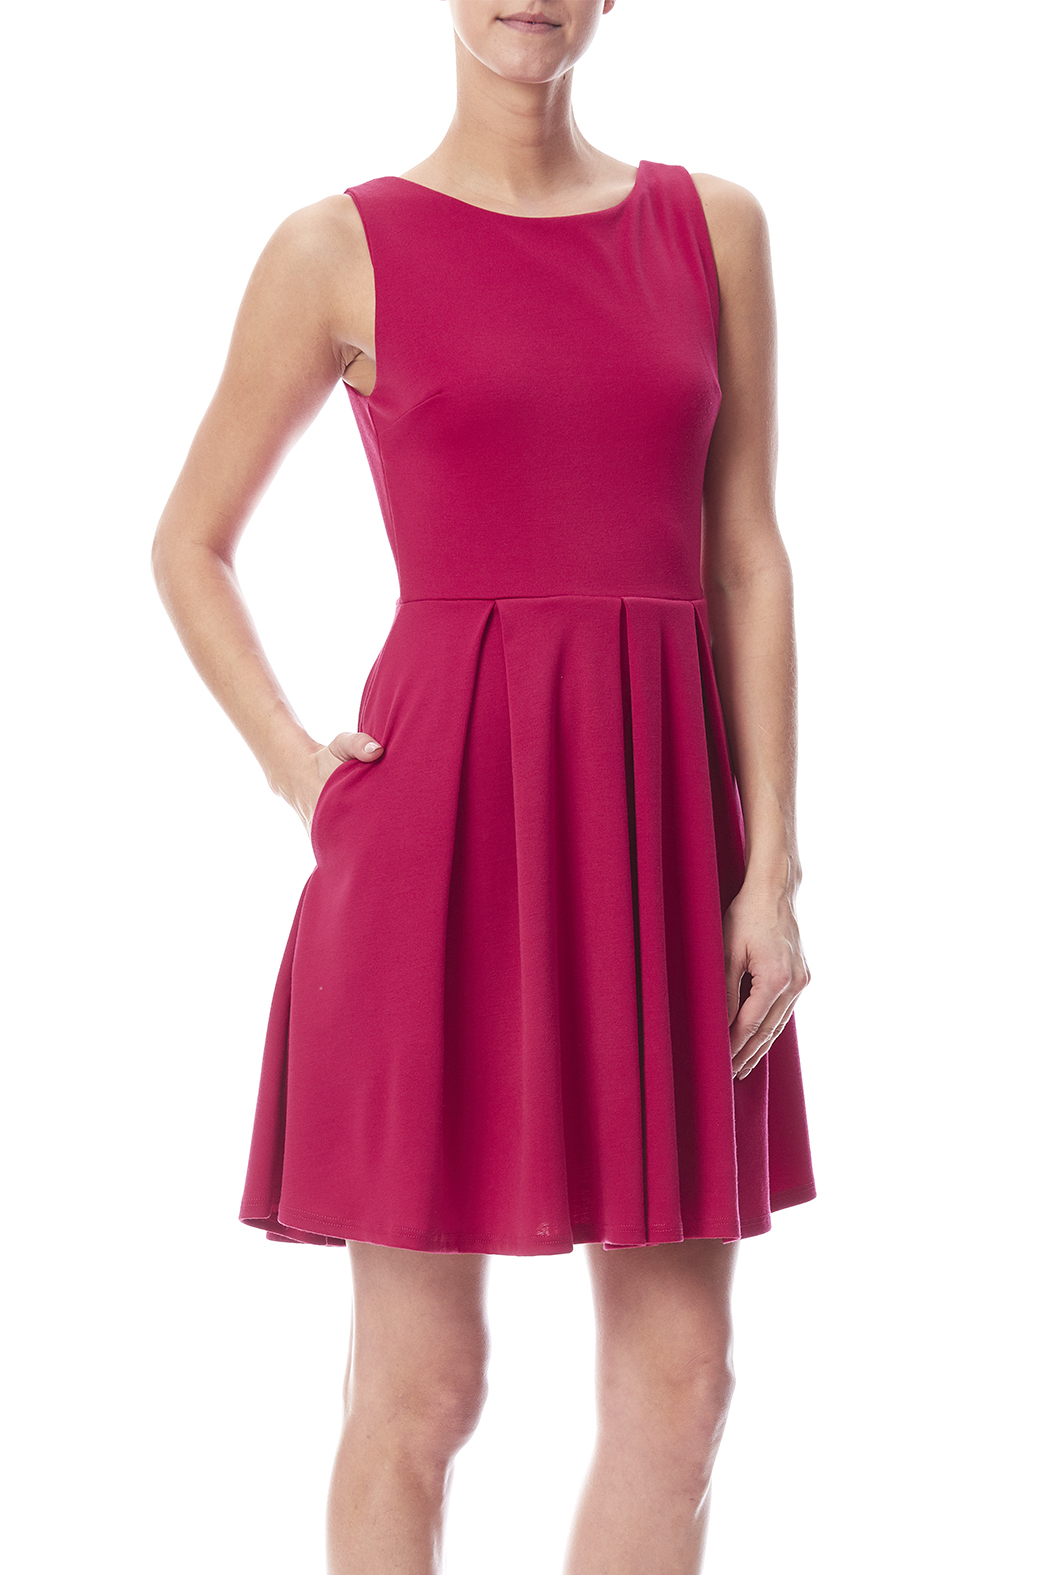 Apricity January Dress Fuchsia - Front Cropped Image